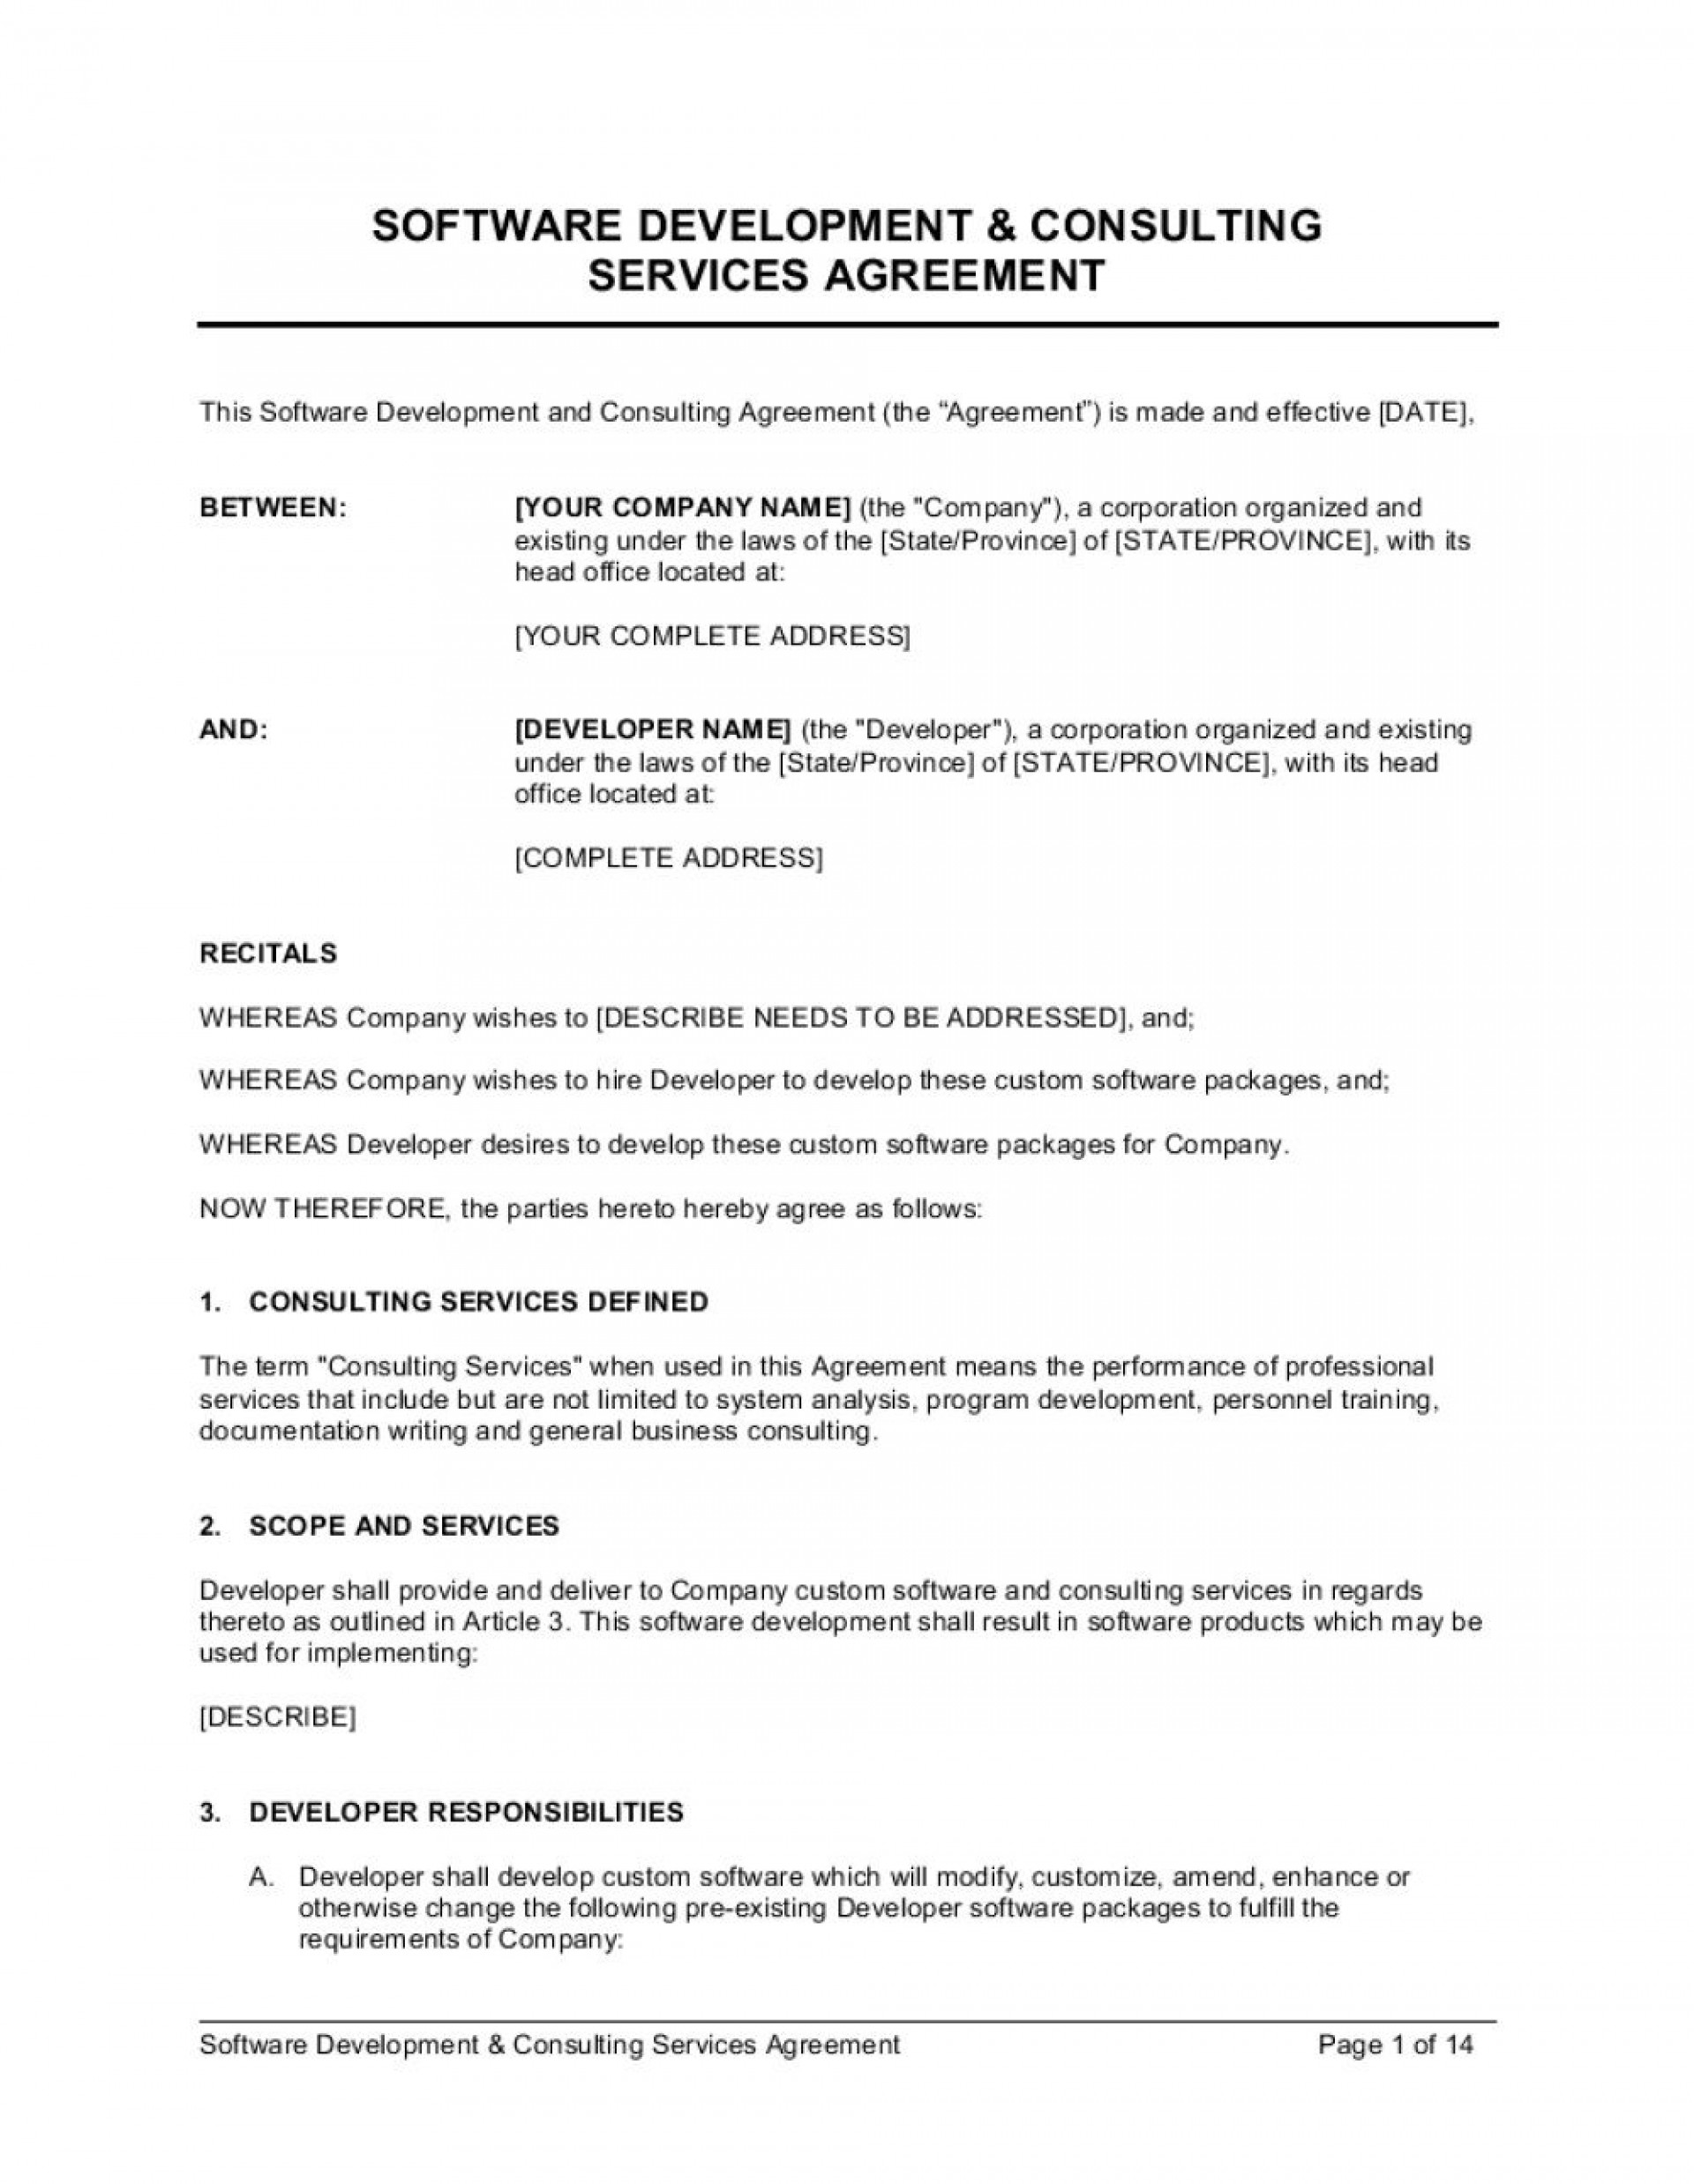 008 Wondrou Consulting Service Agreement Template High Definition  Sample With Retainer Form Australia1920